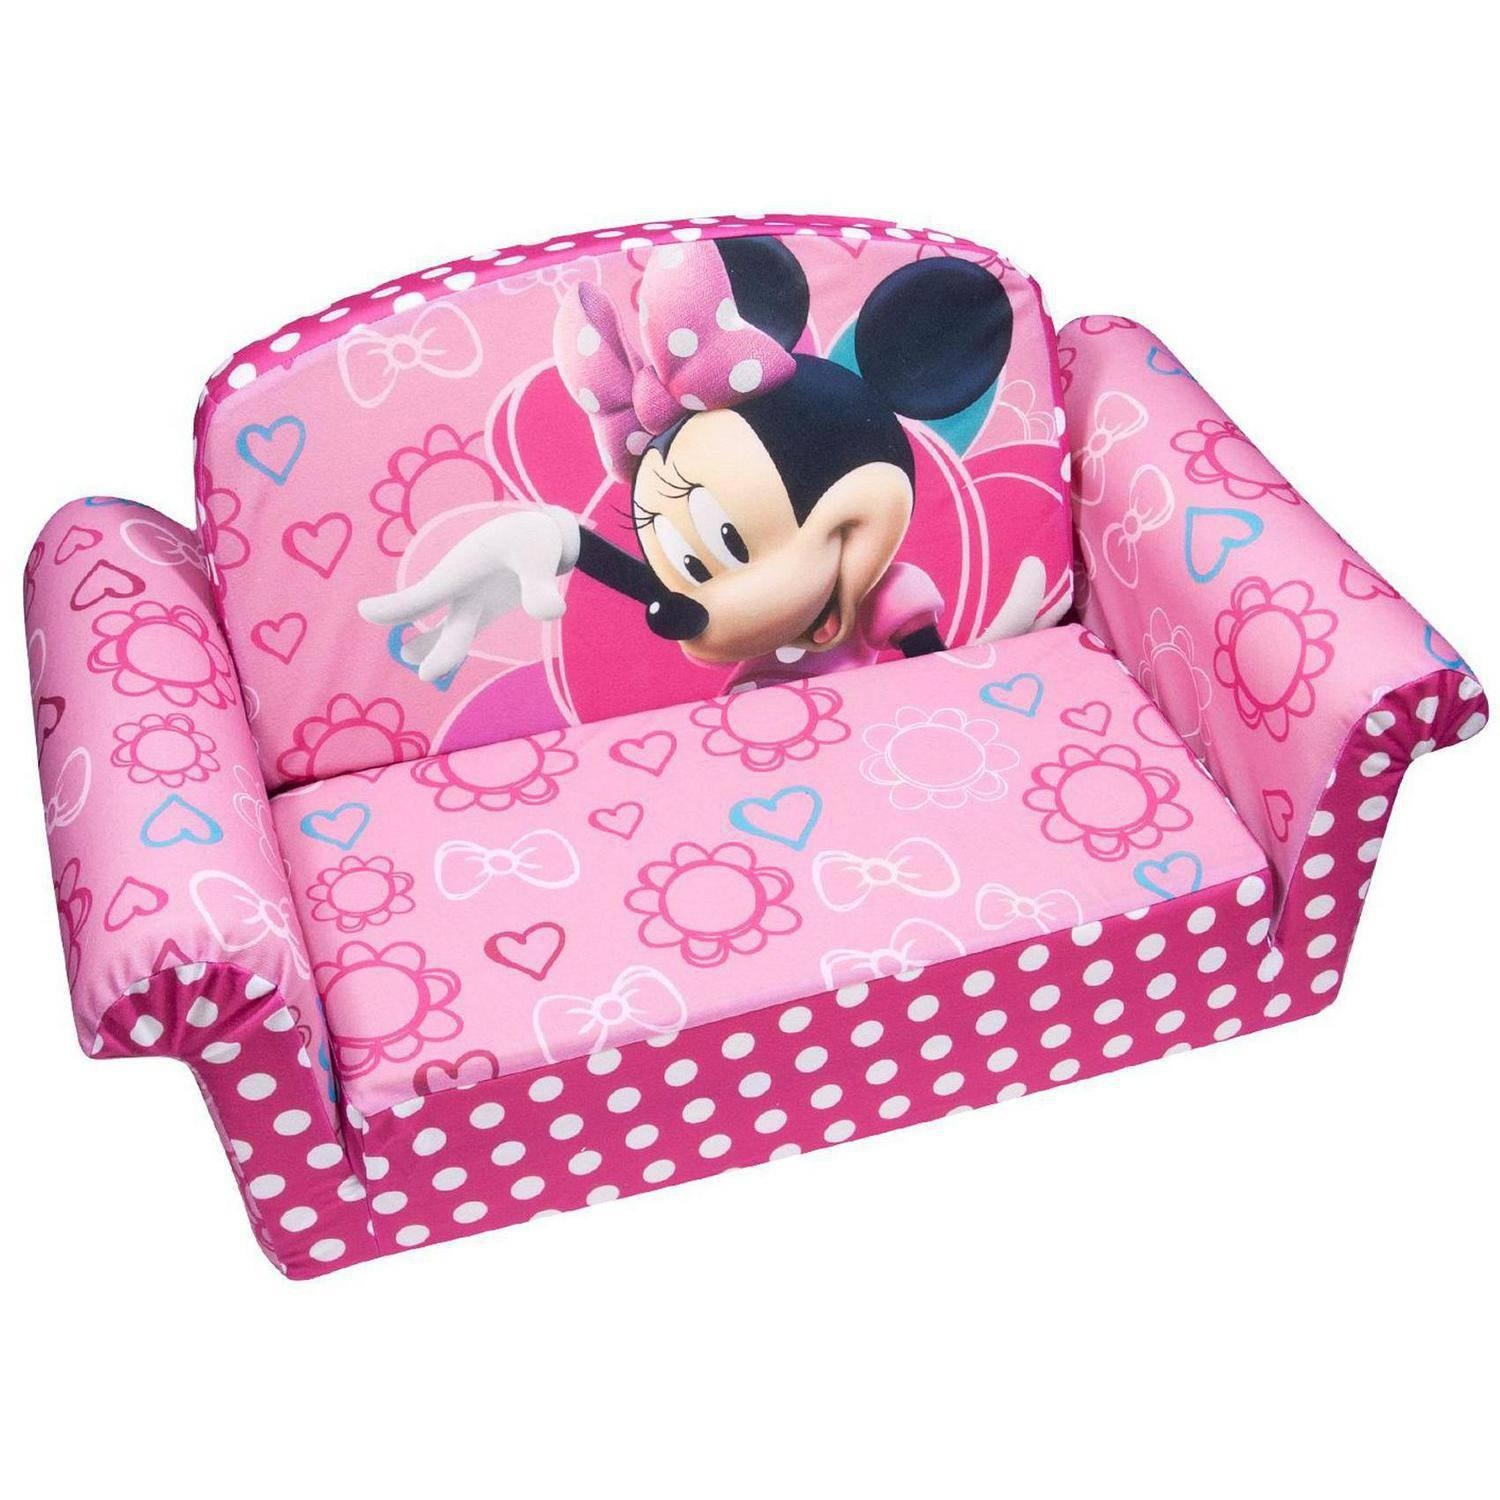 Marshmallow Furniture Flip Open Sofa, Teenage Mutant Ninja Turtles In Flip Open Sofas For Toddlers (Image 11 of 20)